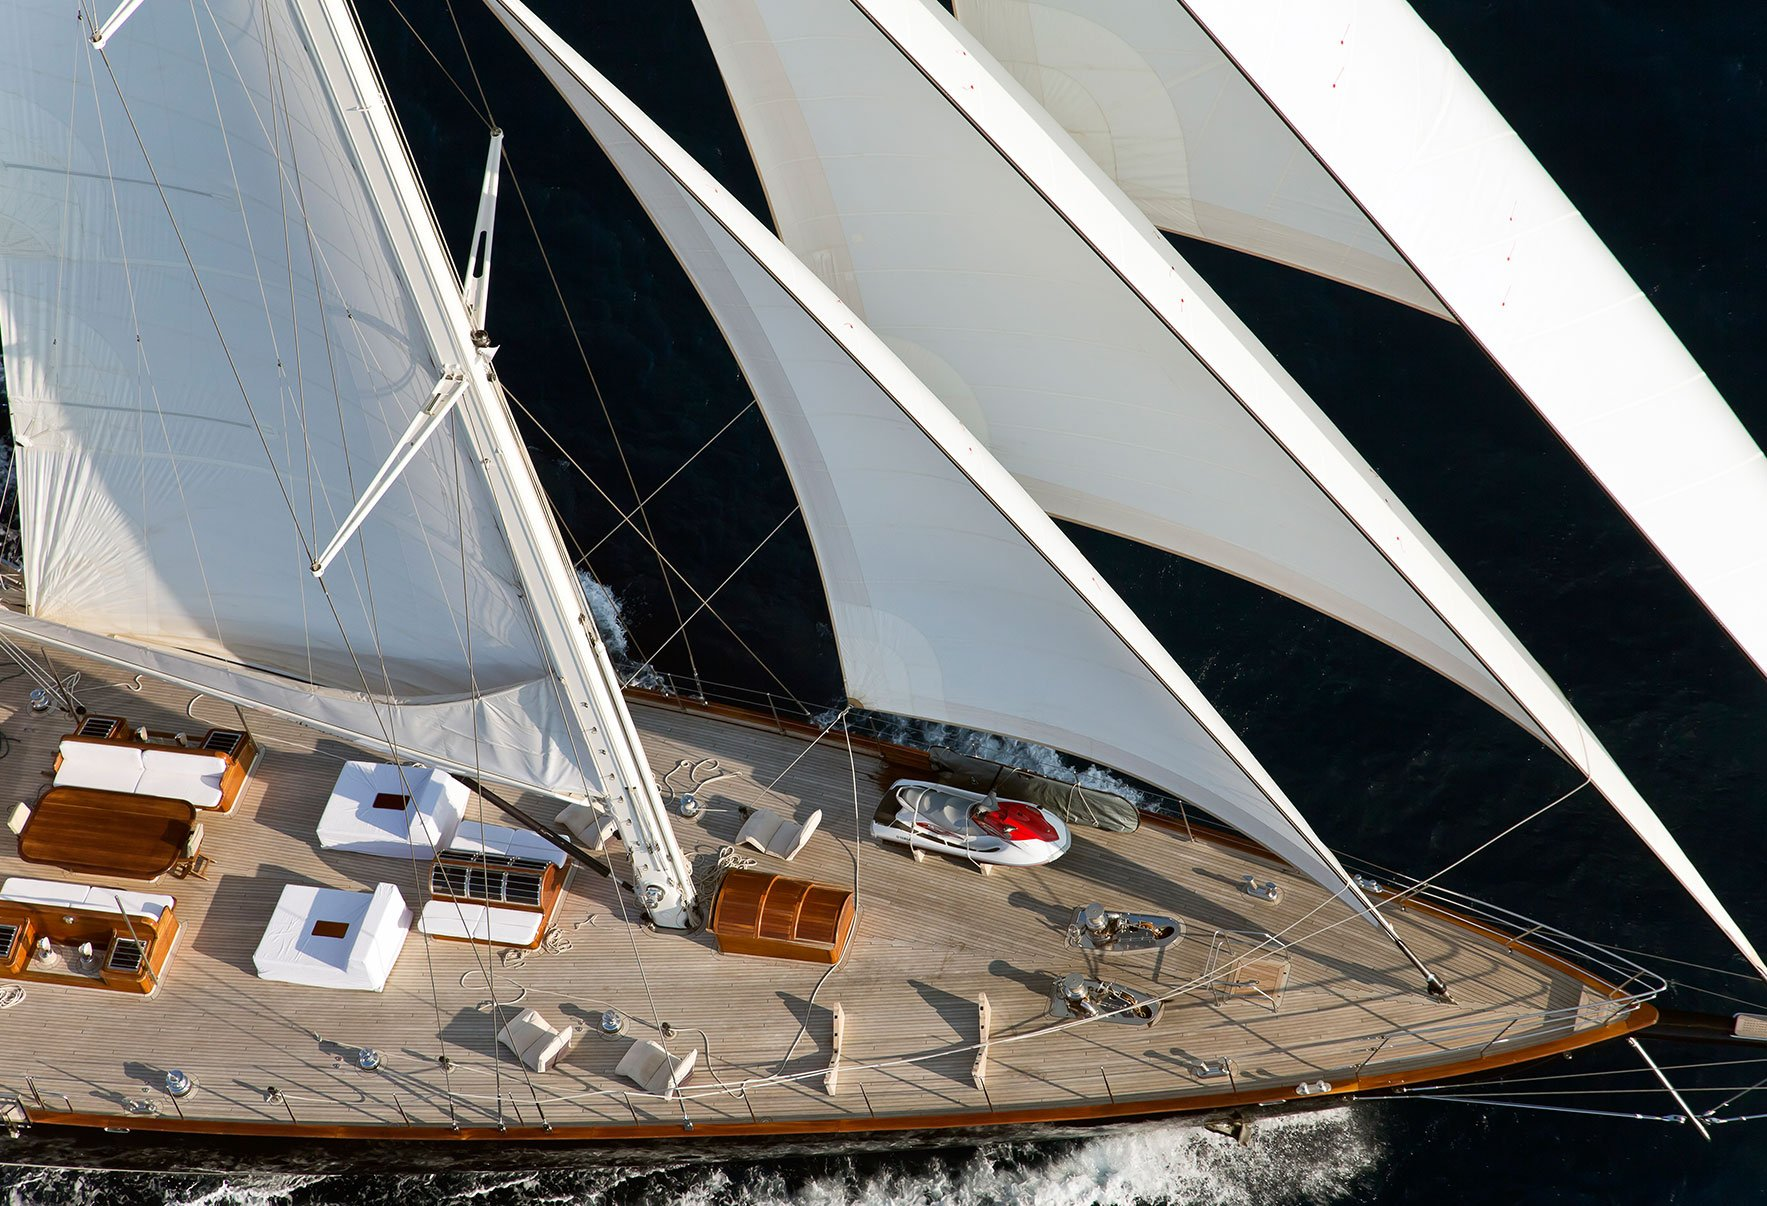 ARIA I Foredeck Under Sail